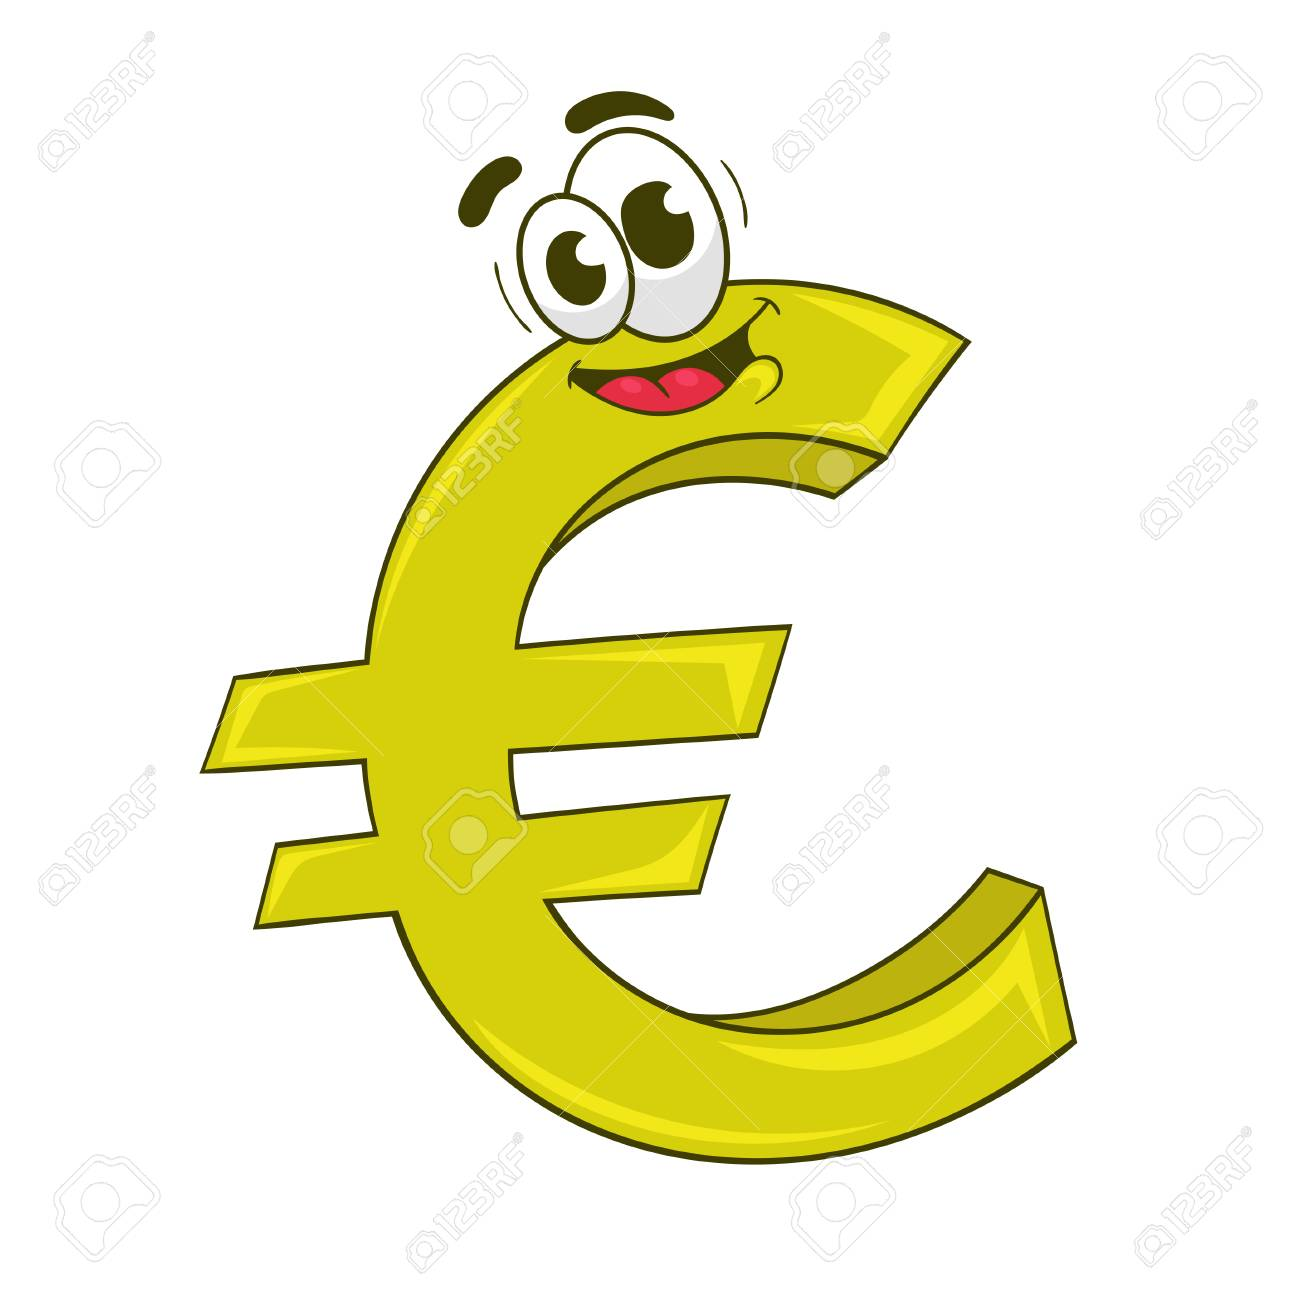 Cartoon Funny Currency Sign Euro Vector Illustration Royalty Free